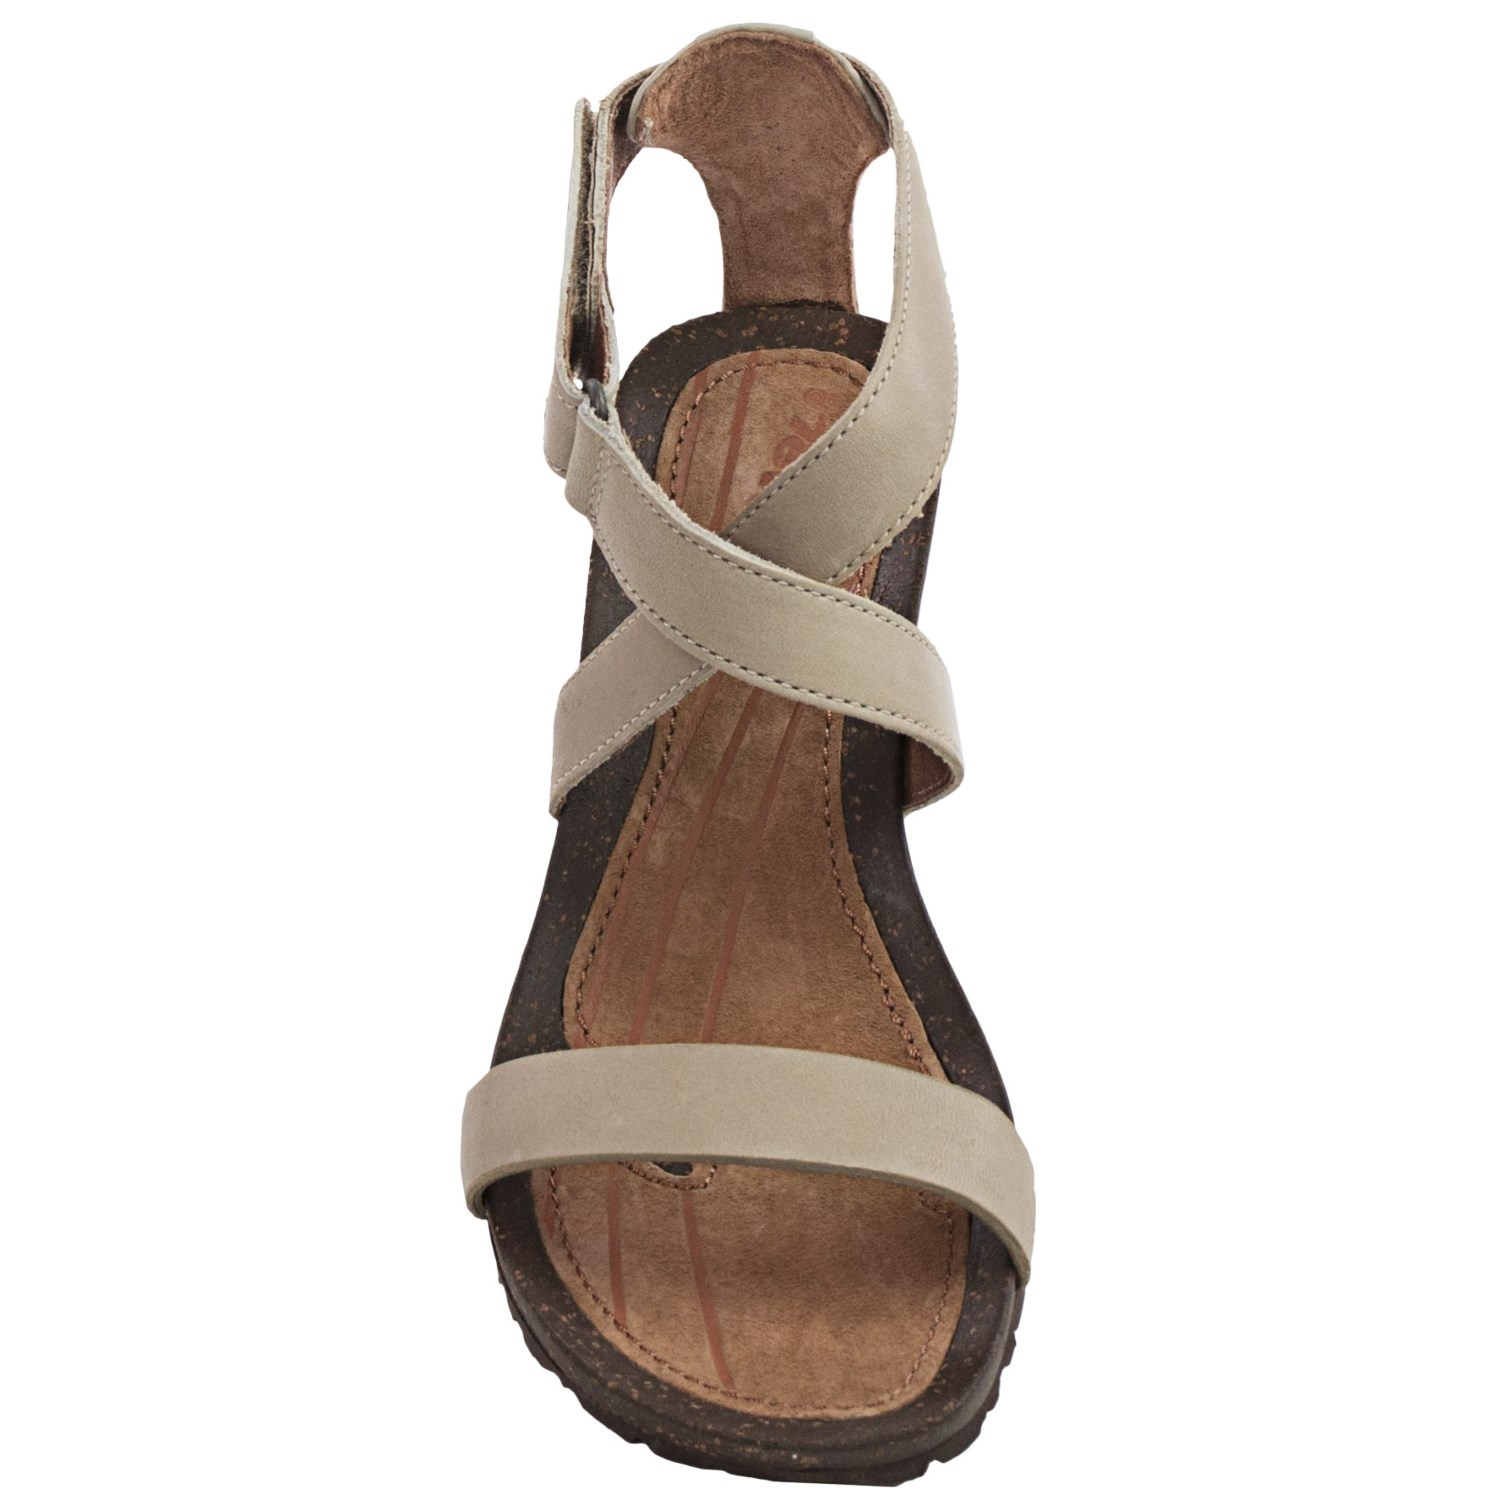 Teva Cabrillo Strap Wedge 2 Sandals For Women Save 58